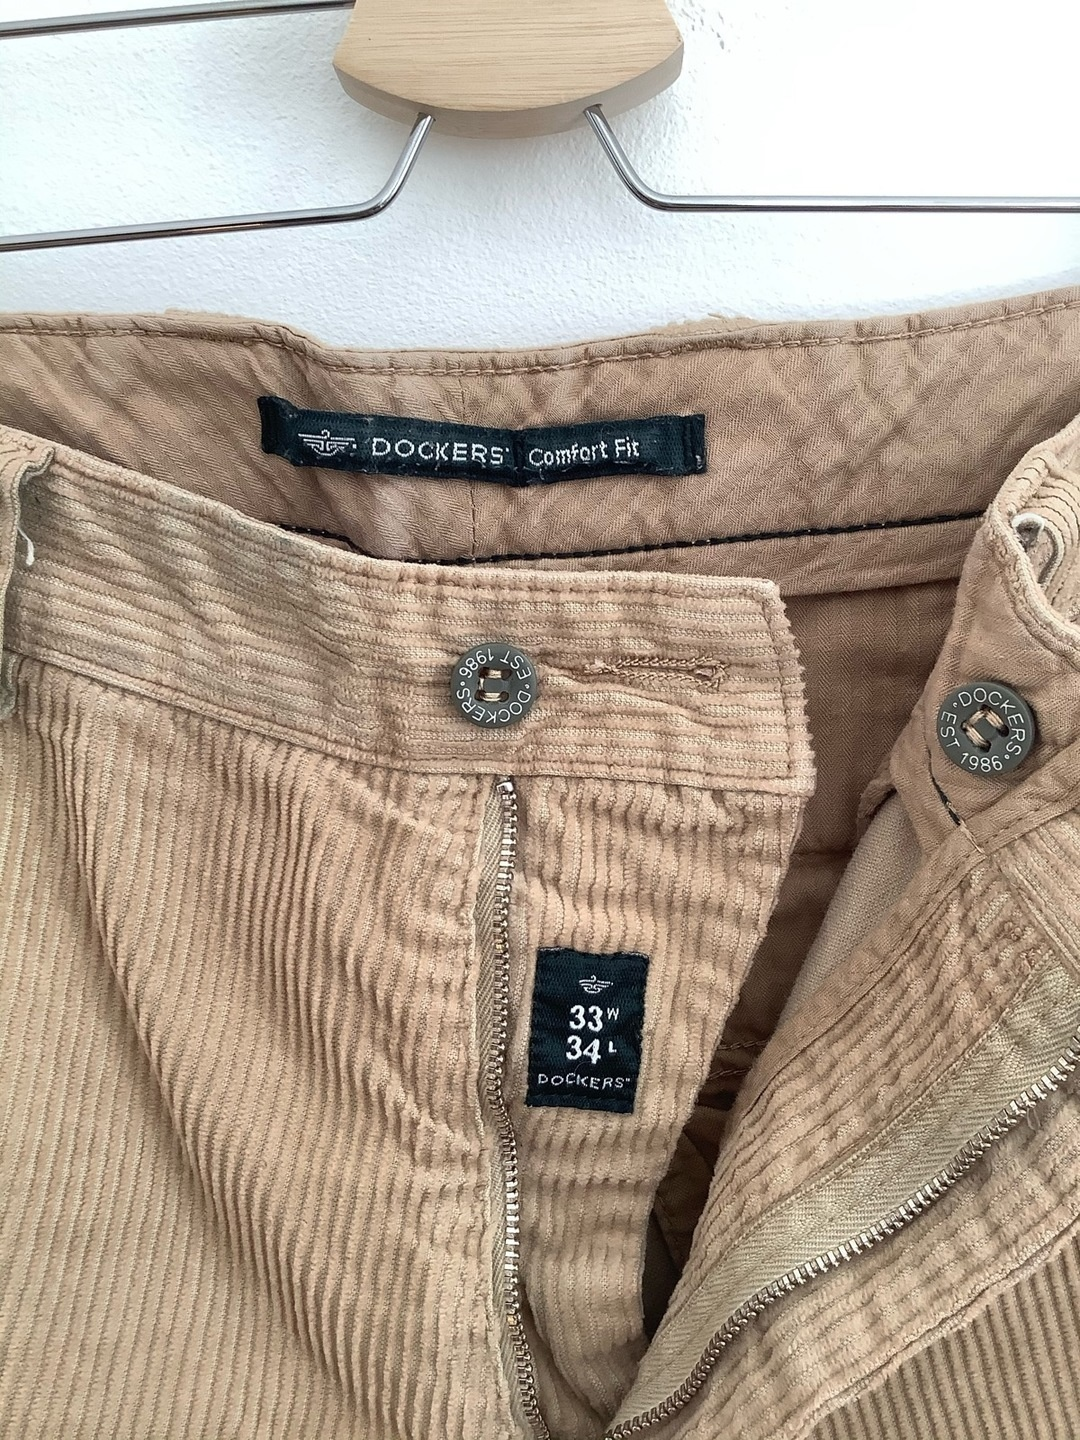 Damen hosen & jeans - DOCKERS photo 3